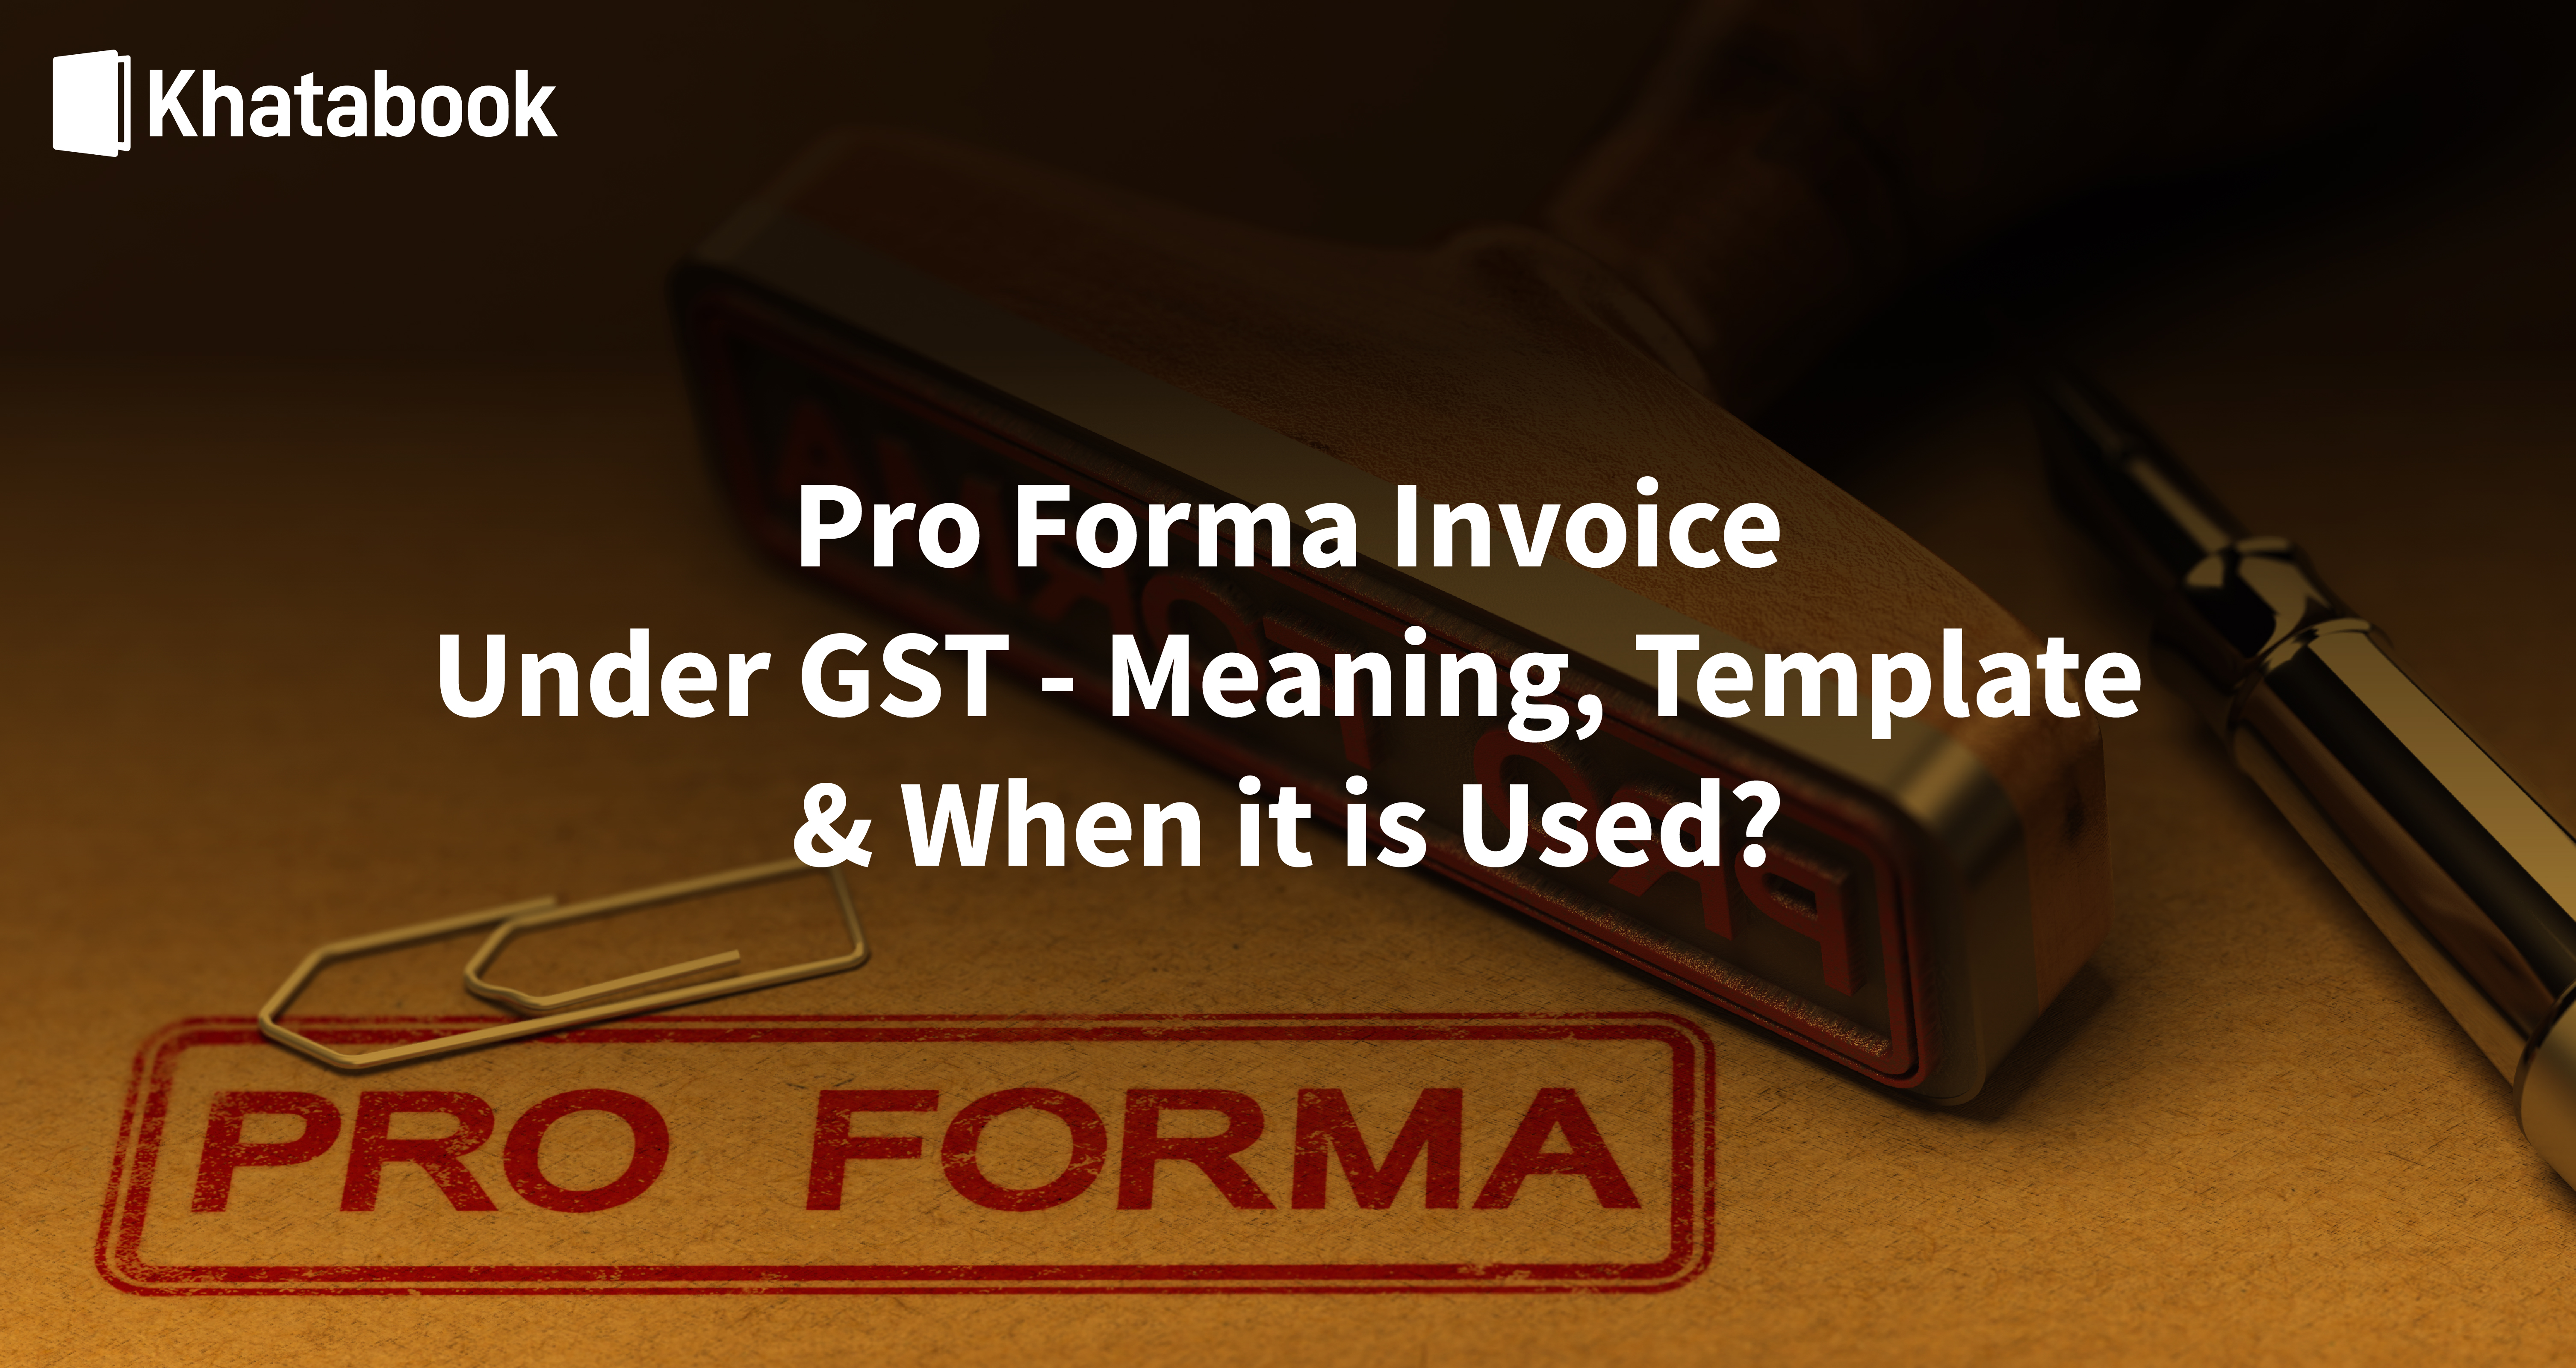 What Is Pro Forma Invoice Under GST - Meaning, Template & Use